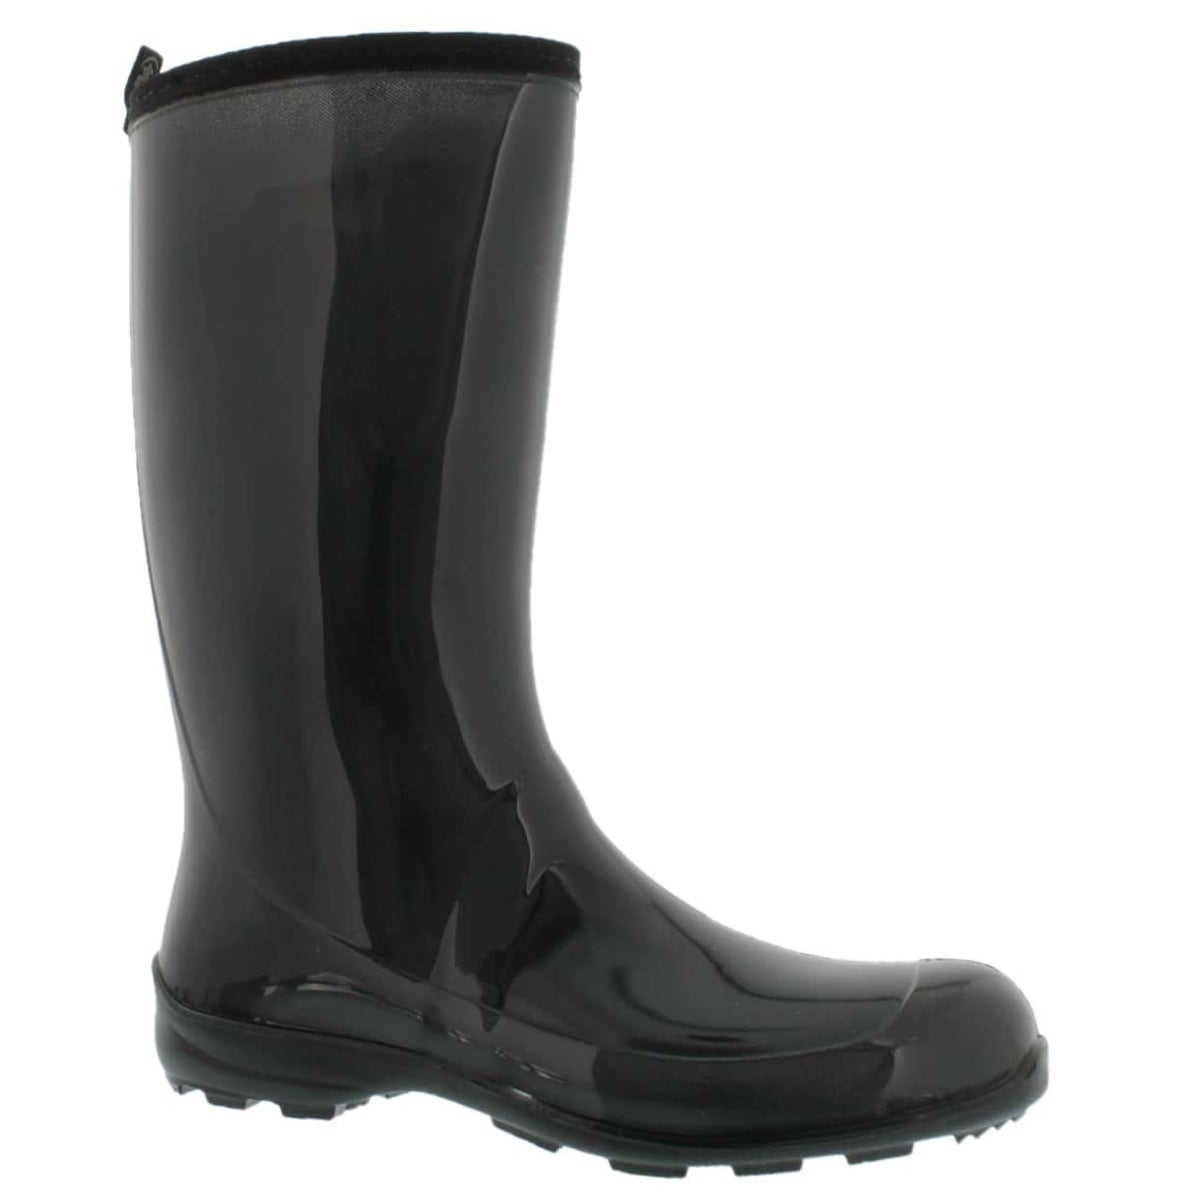 Lds Heidi grey mid wtpf rain boot